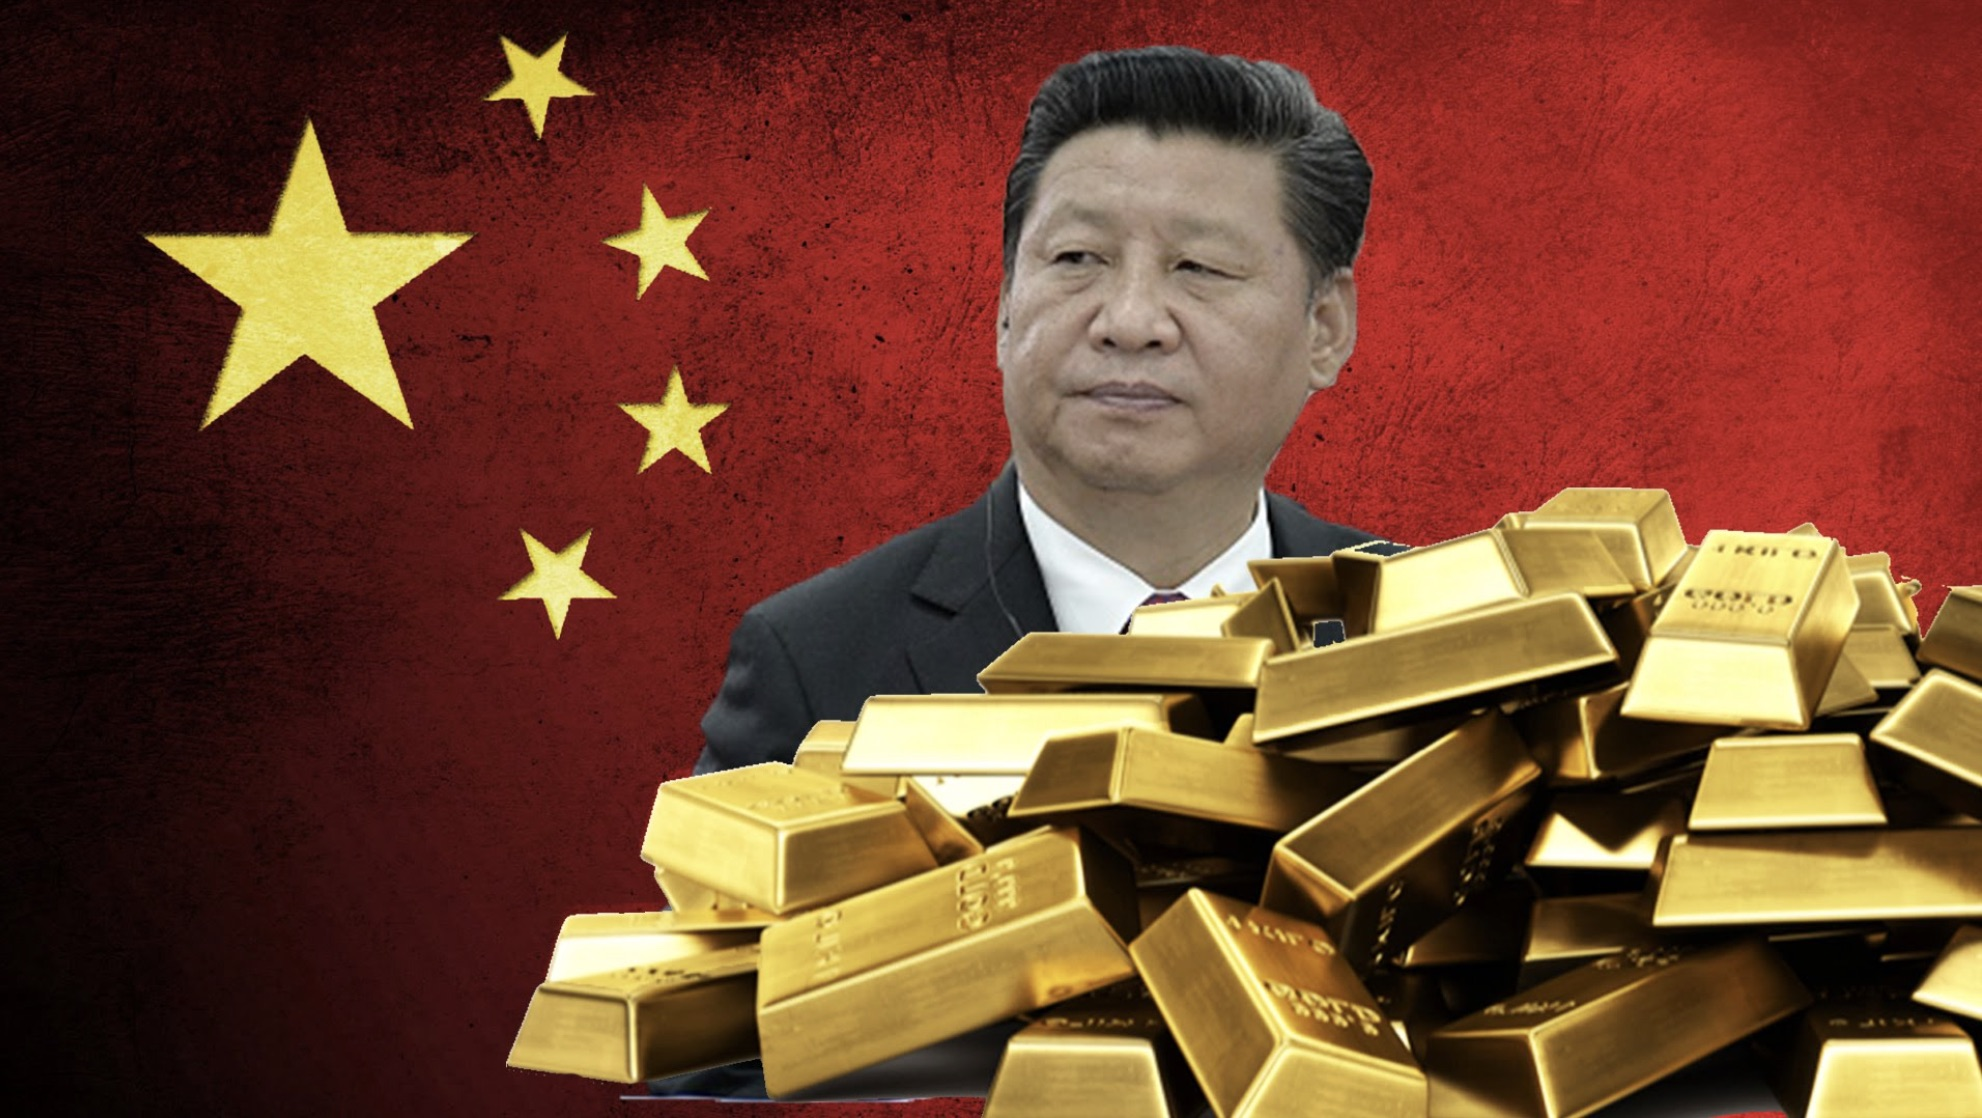 King World News - John Hathaway - China Preparing To Radically Reprice Gold Higher As Demise Of COMEX & LBMA Accelerates